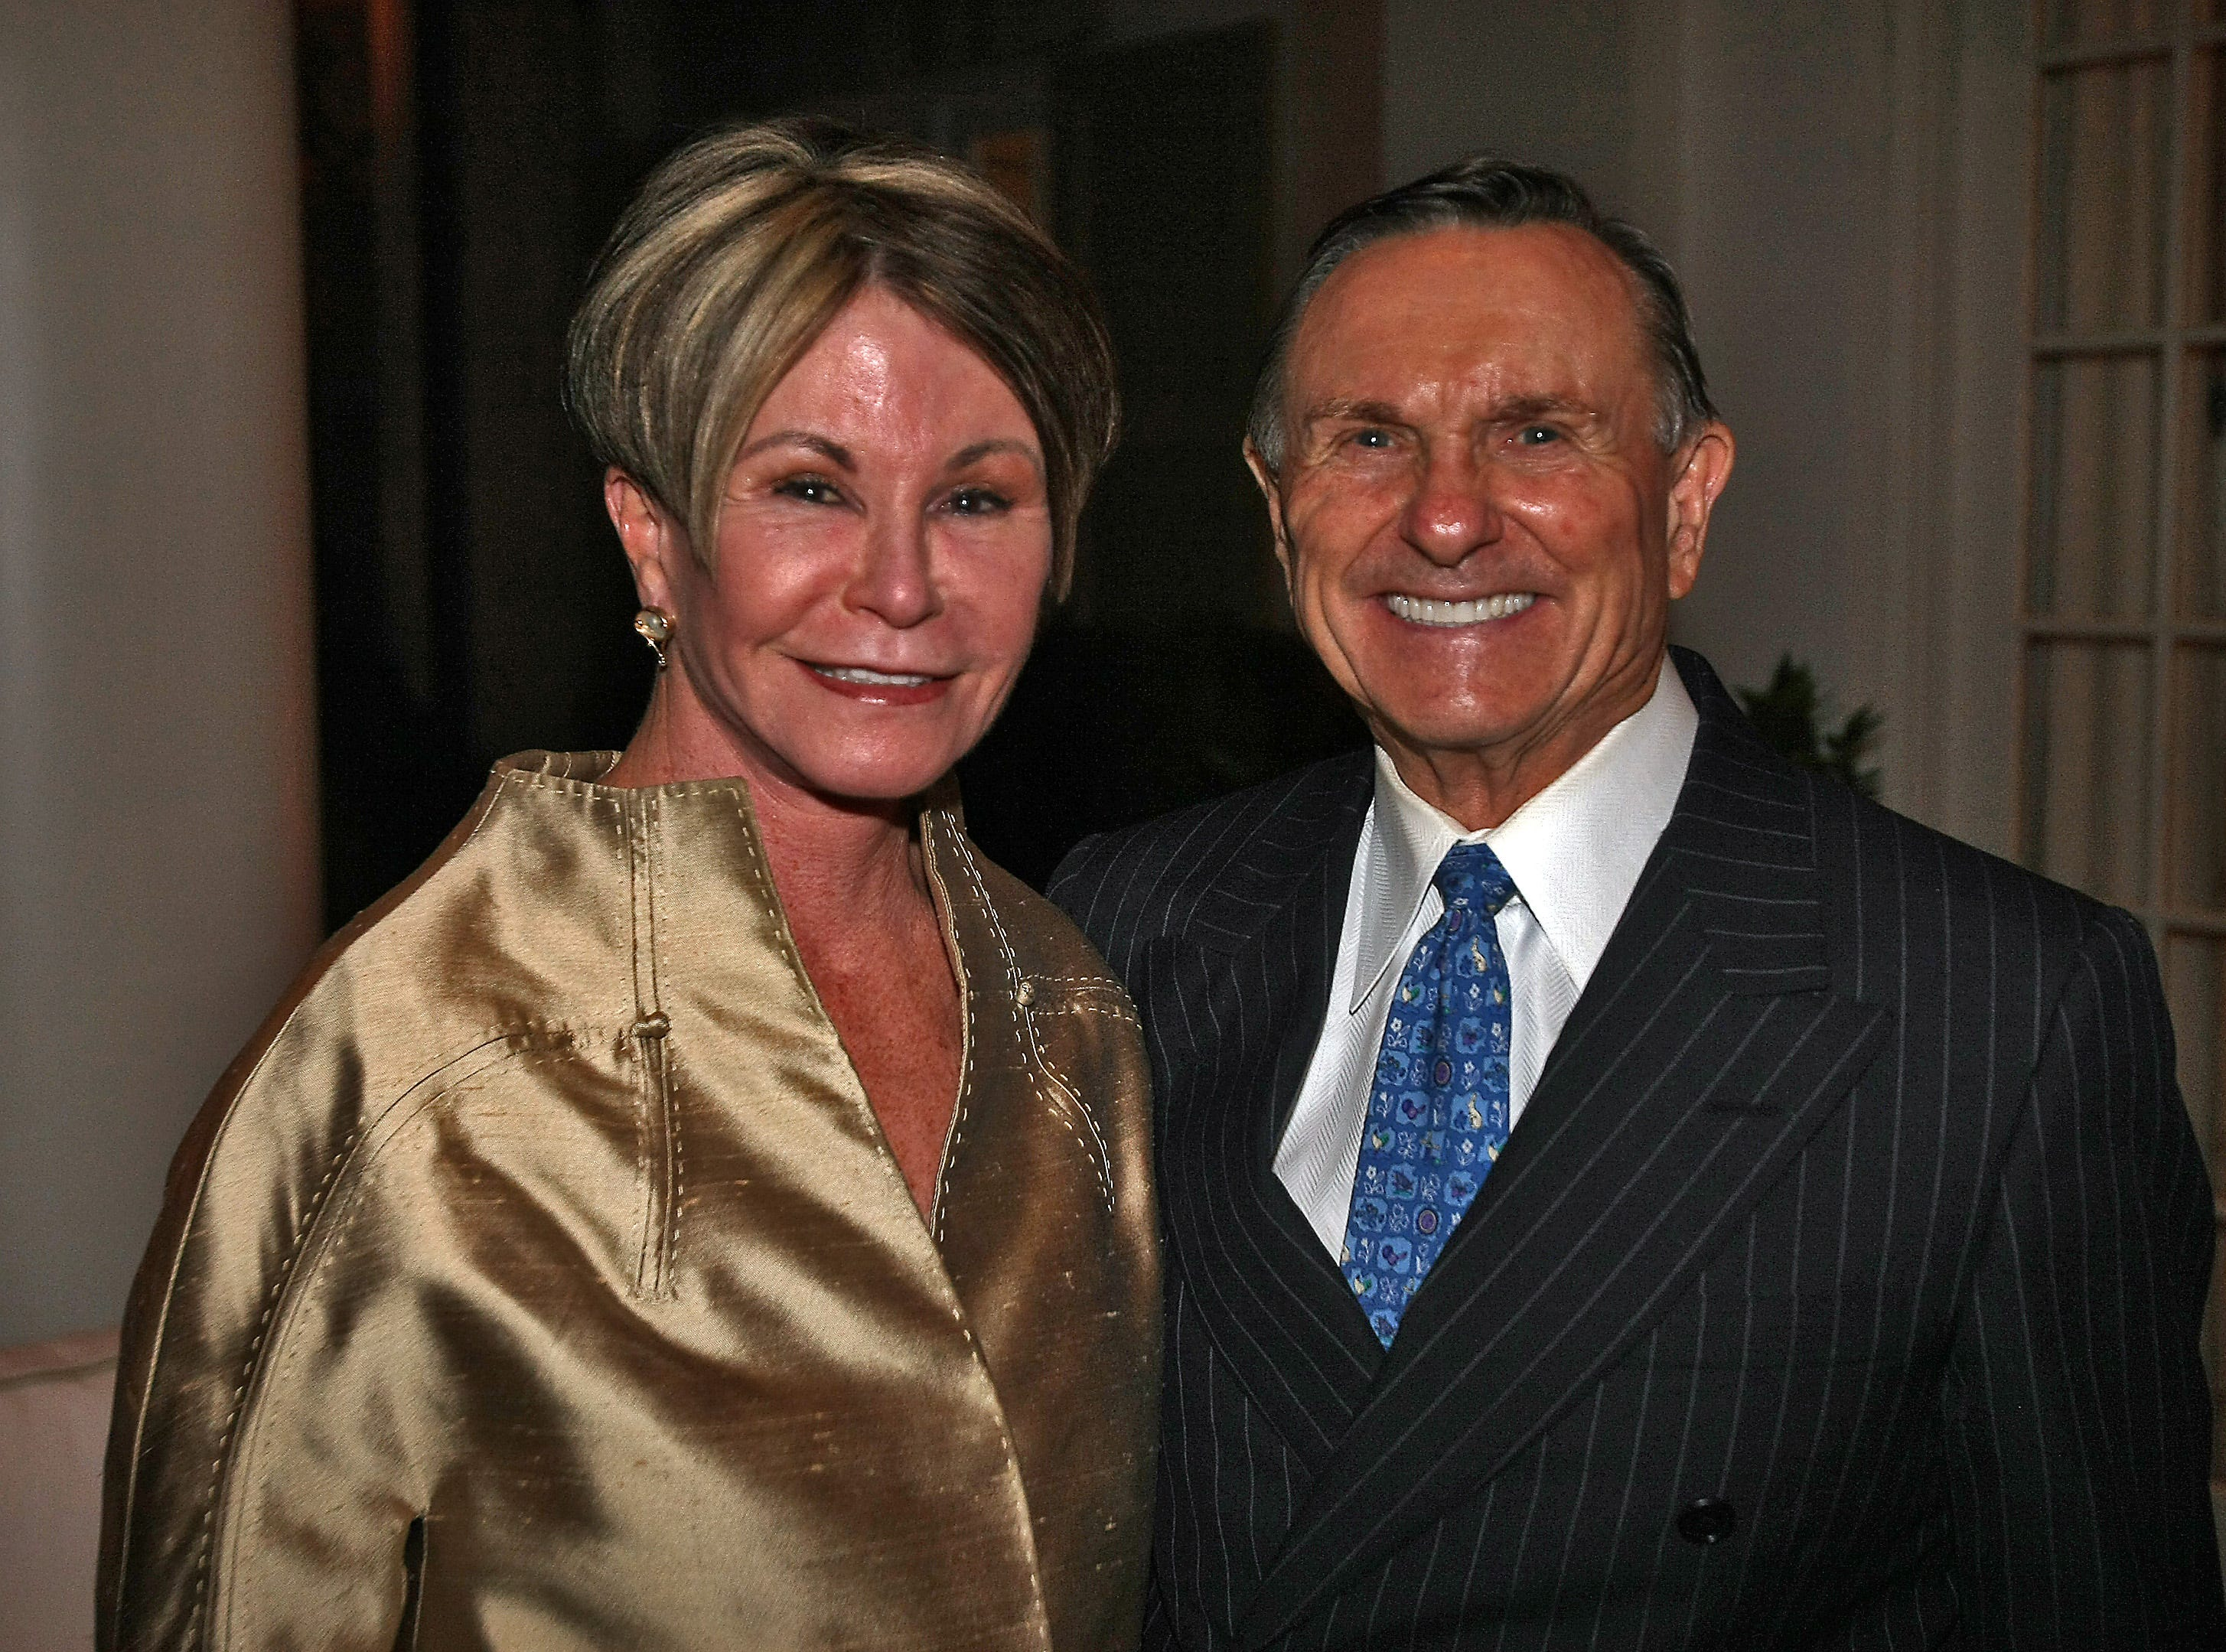 Colleen Conway-Welch, left and Ted Welch during Frist Gala Patron Party at the home of Karyn and Bill Frist in Nashville, Tenn., Thursday, Oct. 6, 2009.